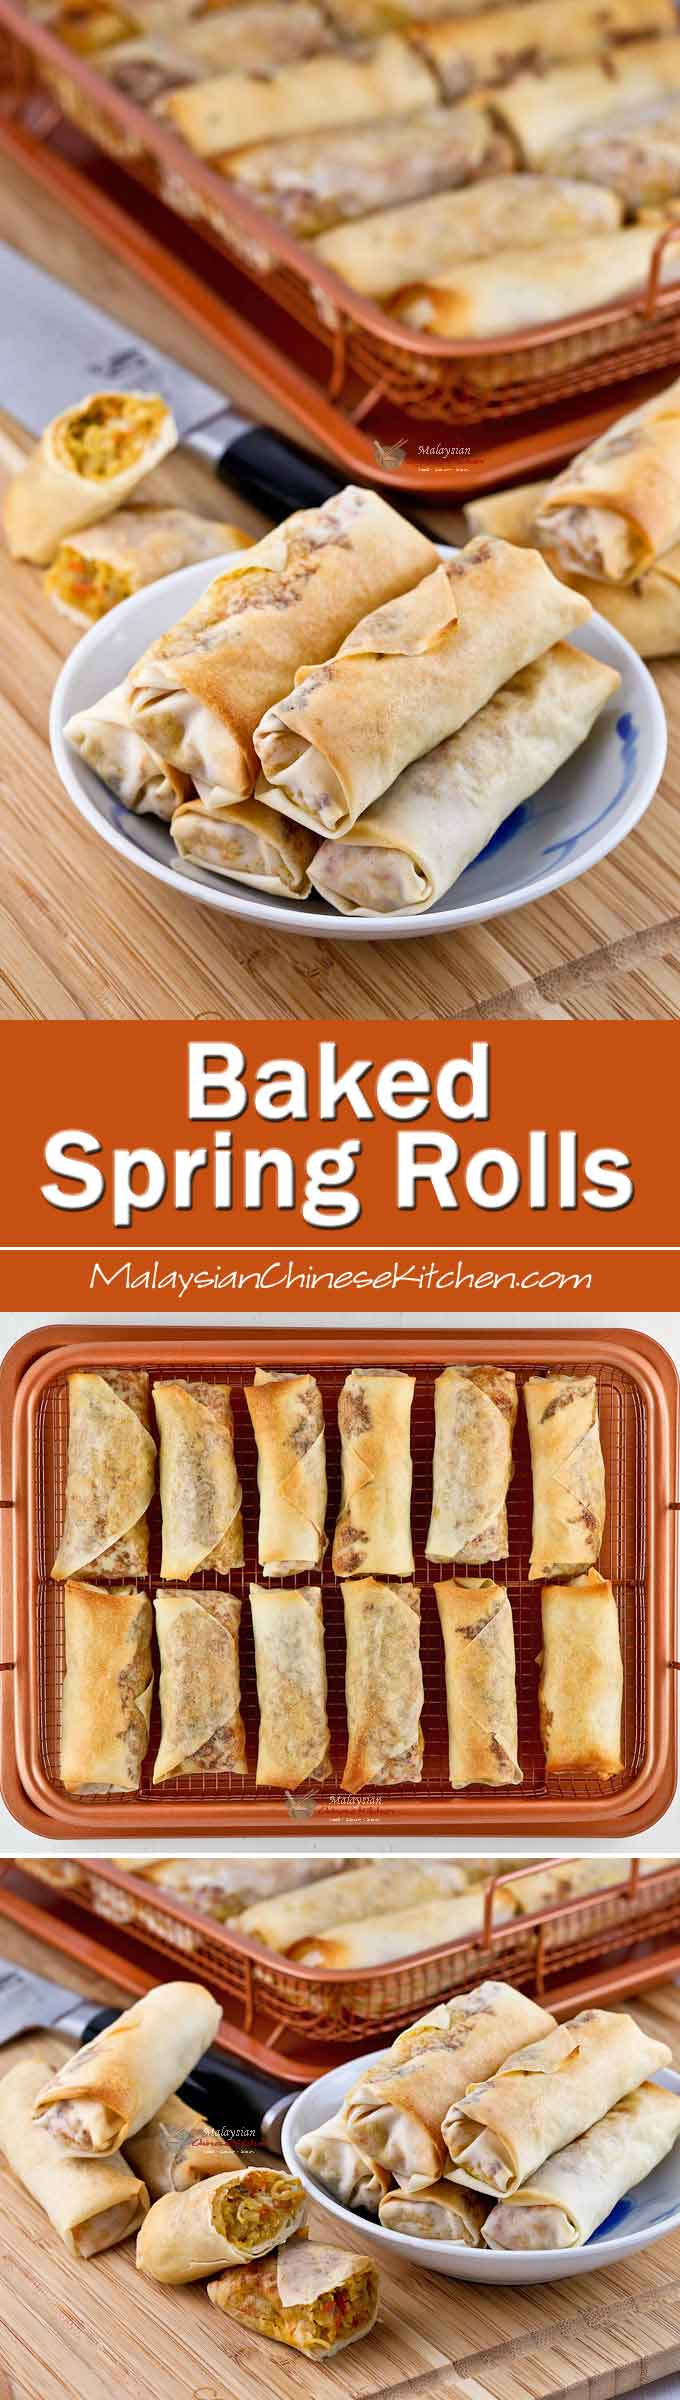 These Baked Spring Rolls filled with jicama, carrots, cabbage, and ground pork are just as delicious as their deep fried counterpart. They are crispy too! | MalaysianChineseKitchen.com